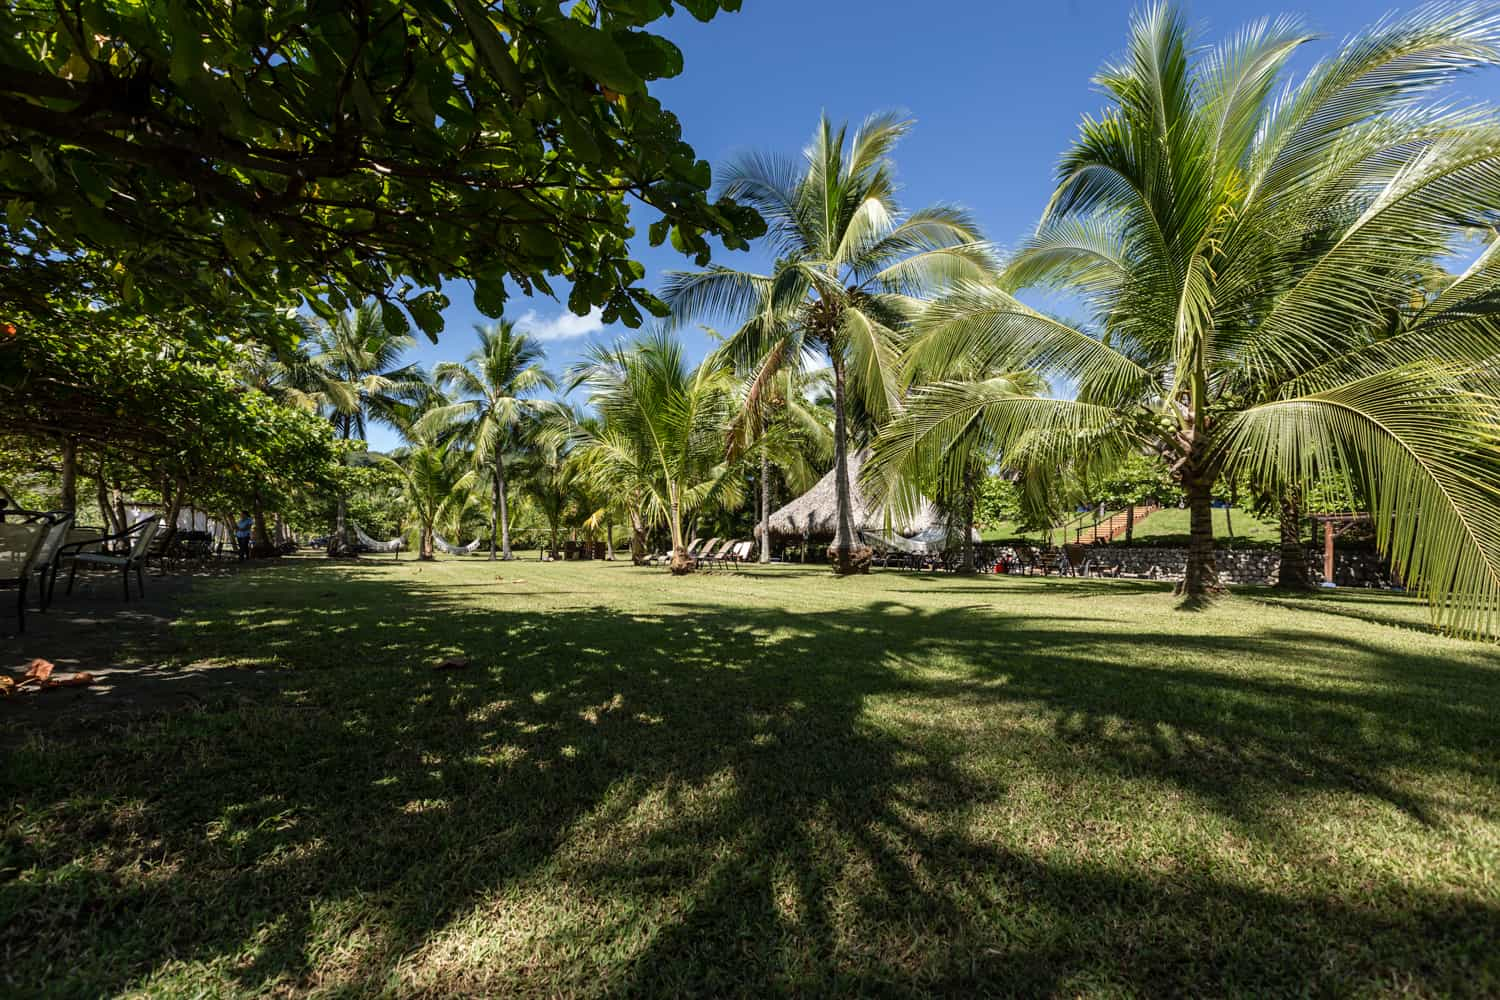 Beachfront lawn location for receptions and ceremonies.